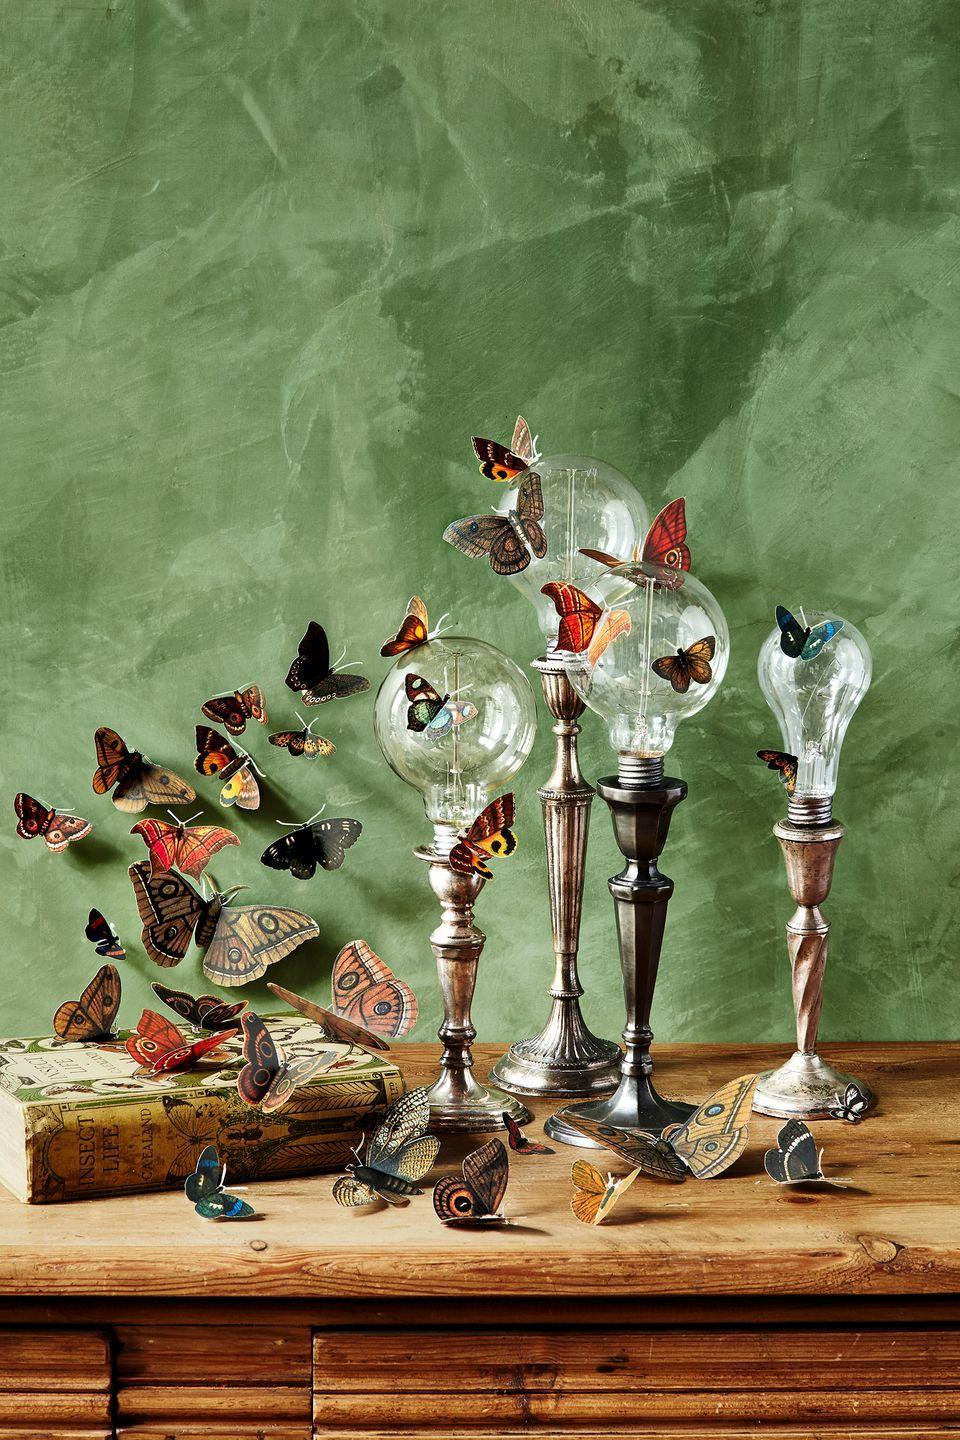 """<p>Affix clear lightbulbs on top of candlesticks (aged metal looks are a good choice) then add butterfly decals for a whimsical look. </p><p><a class=""""link rapid-noclick-resp"""" href=""""https://www.amazon.com/Butterfly-Stickers-Luminous-Removable-Butterflies/dp/B08221MVX2/?tag=syn-yahoo-20&ascsubtag=%5Bartid%7C10055.g.33437890%5Bsrc%7Cyahoo-us"""" rel=""""nofollow noopener"""" target=""""_blank"""" data-ylk=""""slk:SHOP BUTTERFLIES"""">SHOP BUTTERFLIES</a></p>"""